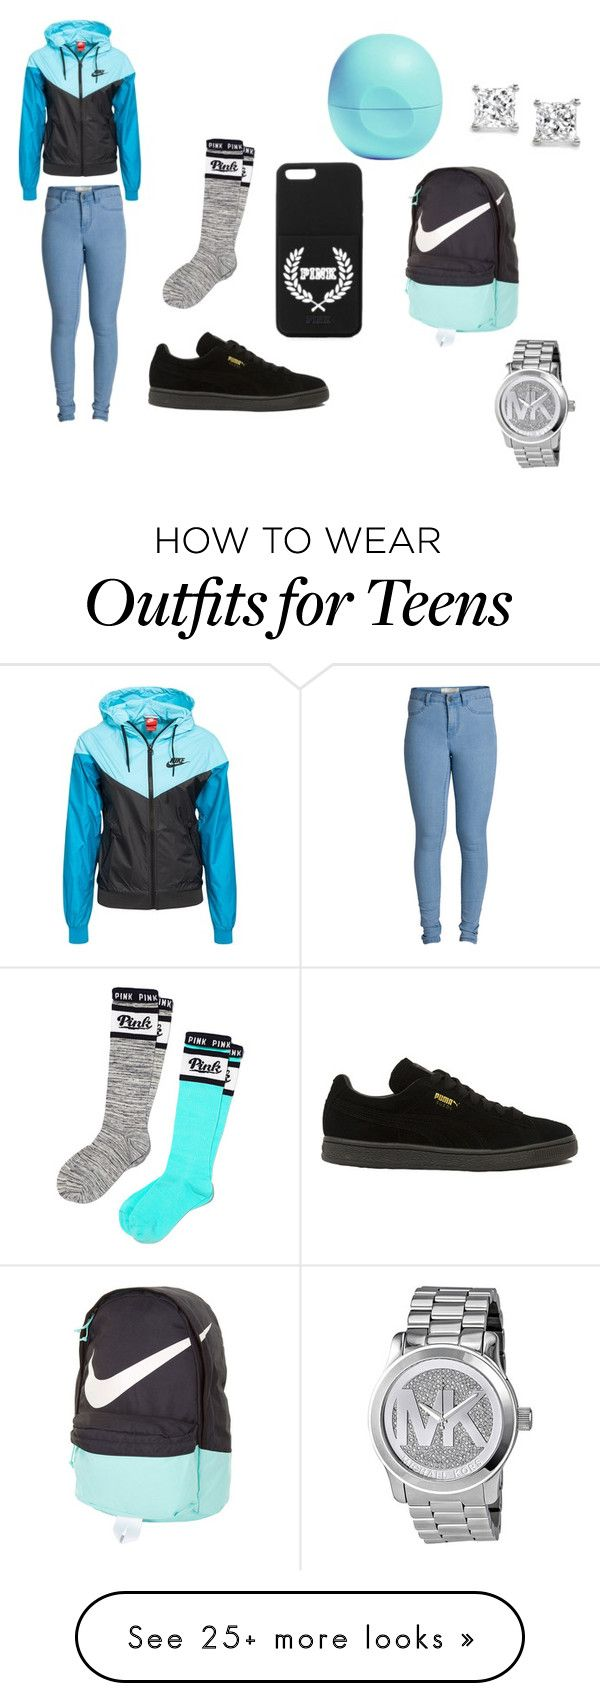 """""""teens only"""" by lordgirlky on Polyvore featuring NIKE, Puma, Pieces, Victoria's Secret PINK, Eos, Michael Kors, women's clothing, women's fashion, women and female"""